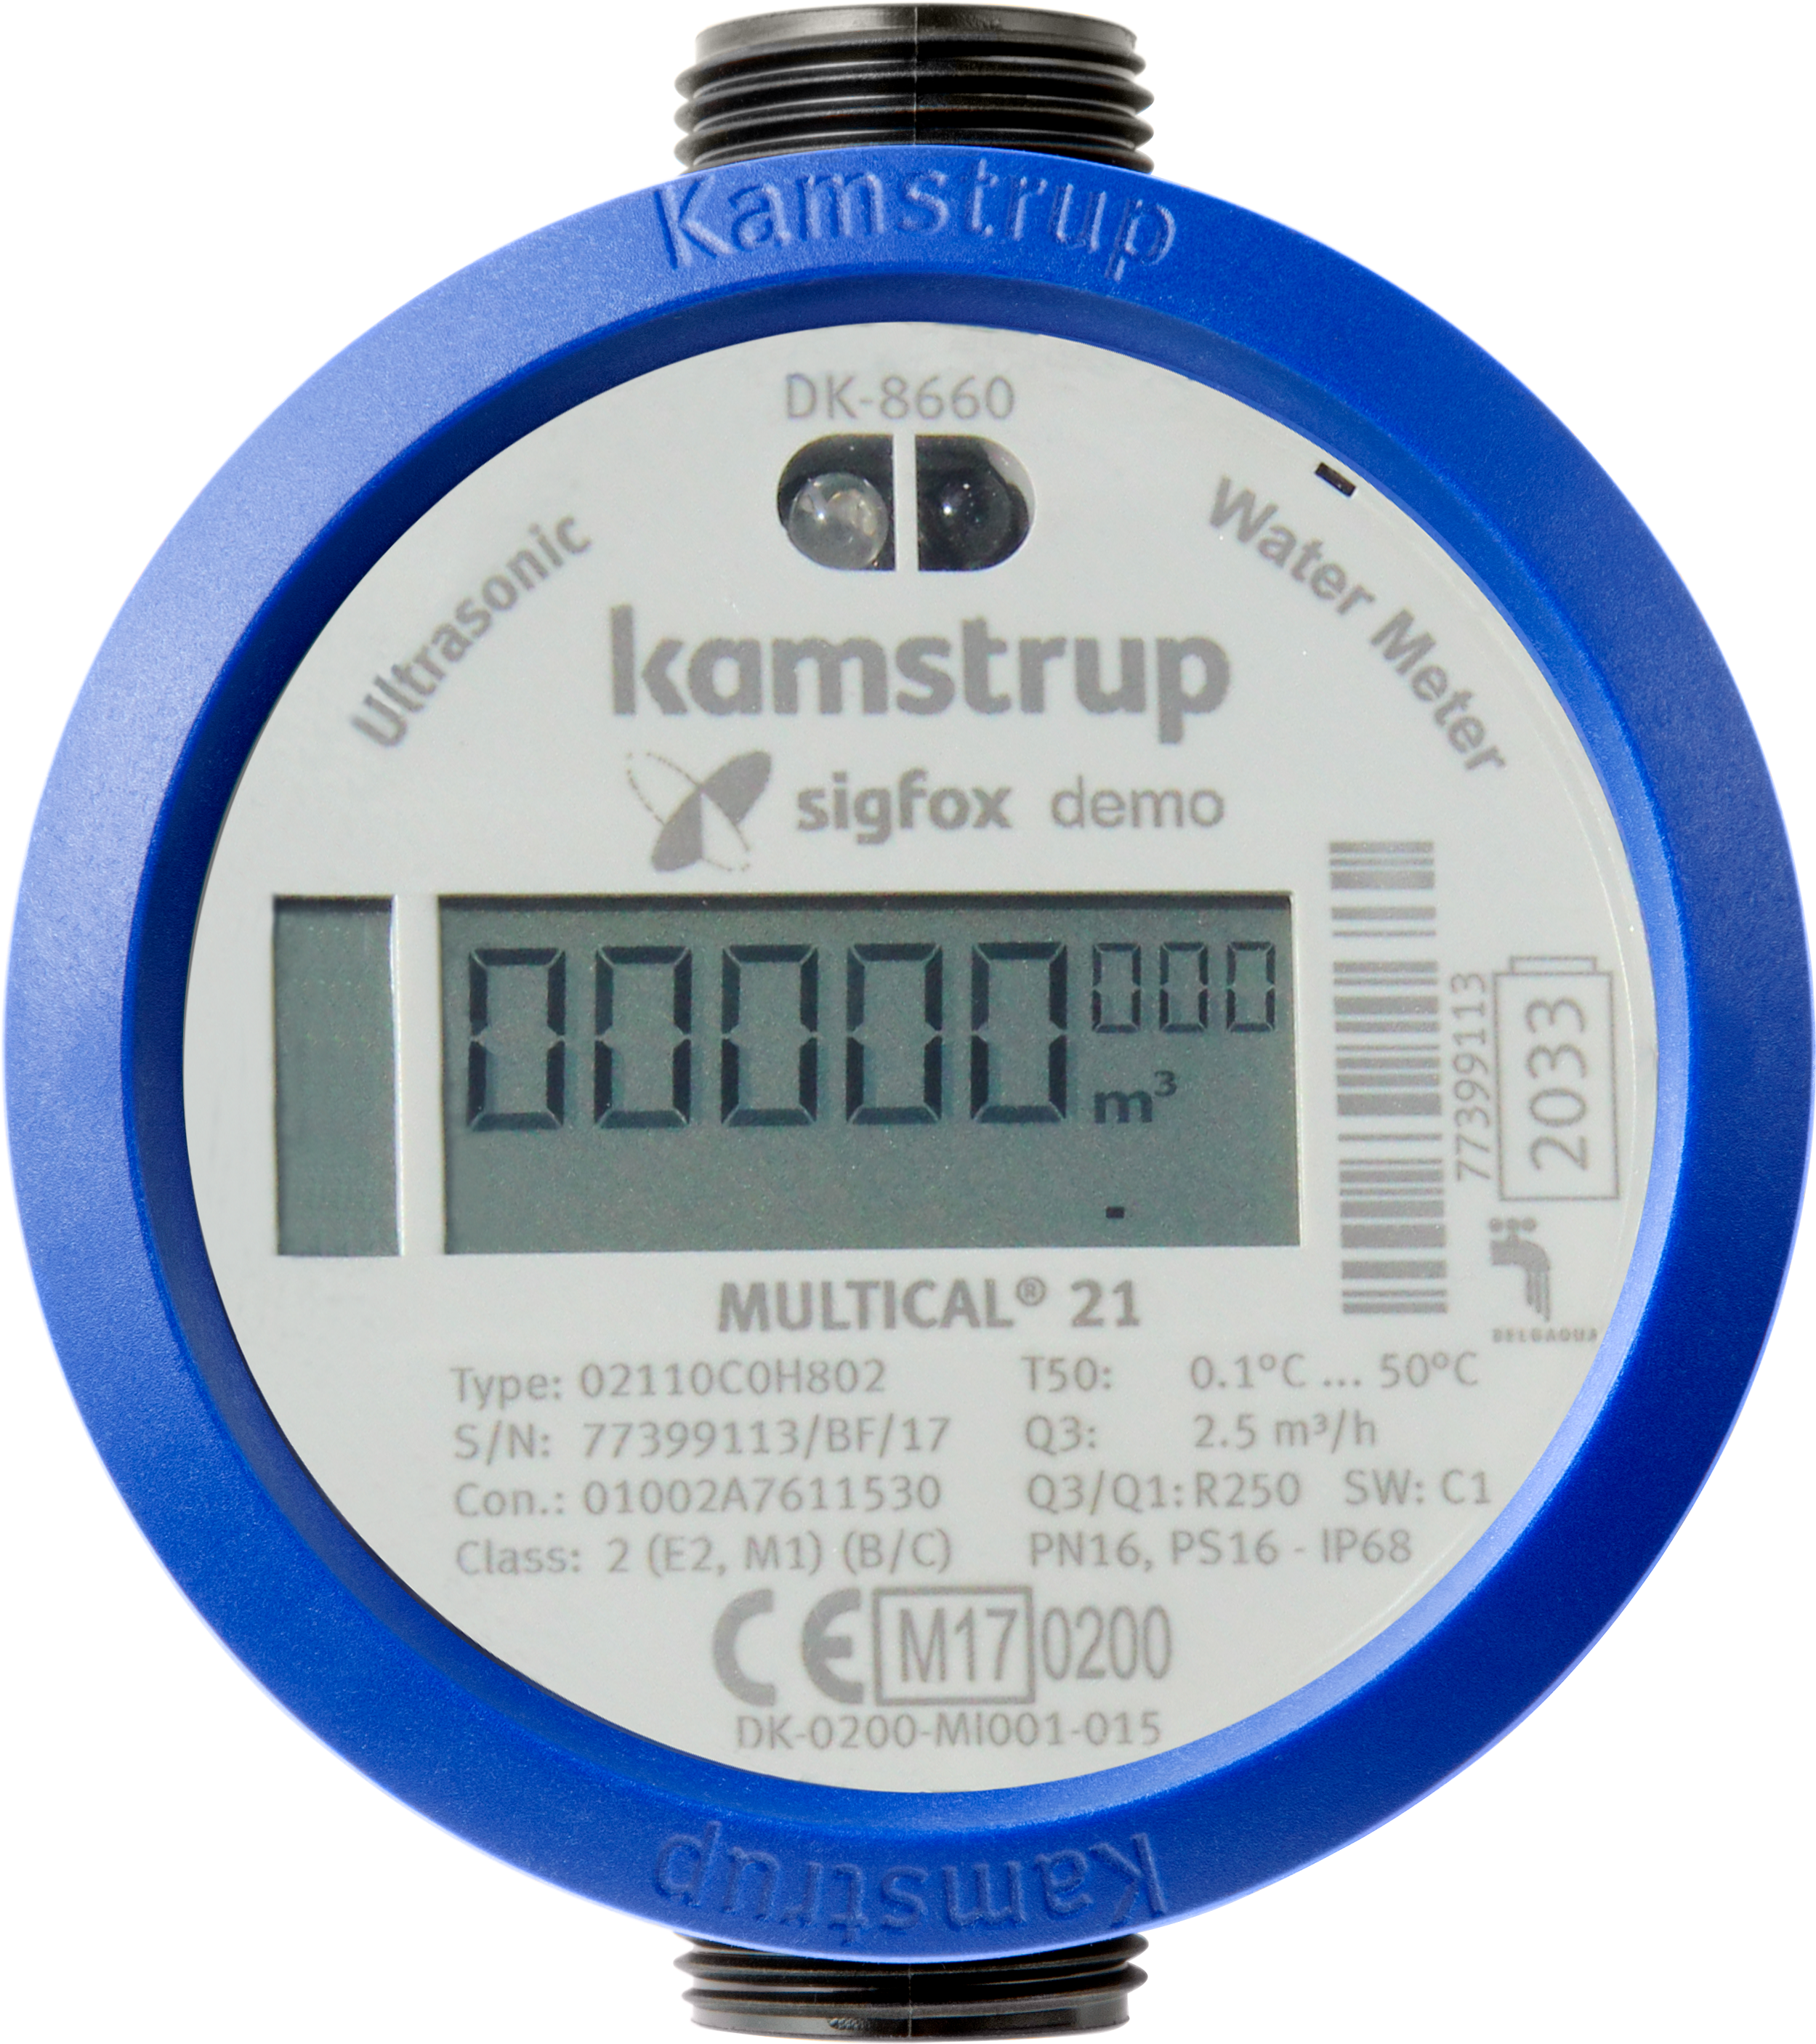 Kamstrup introduces first ever smart water meter with Sigfox ...